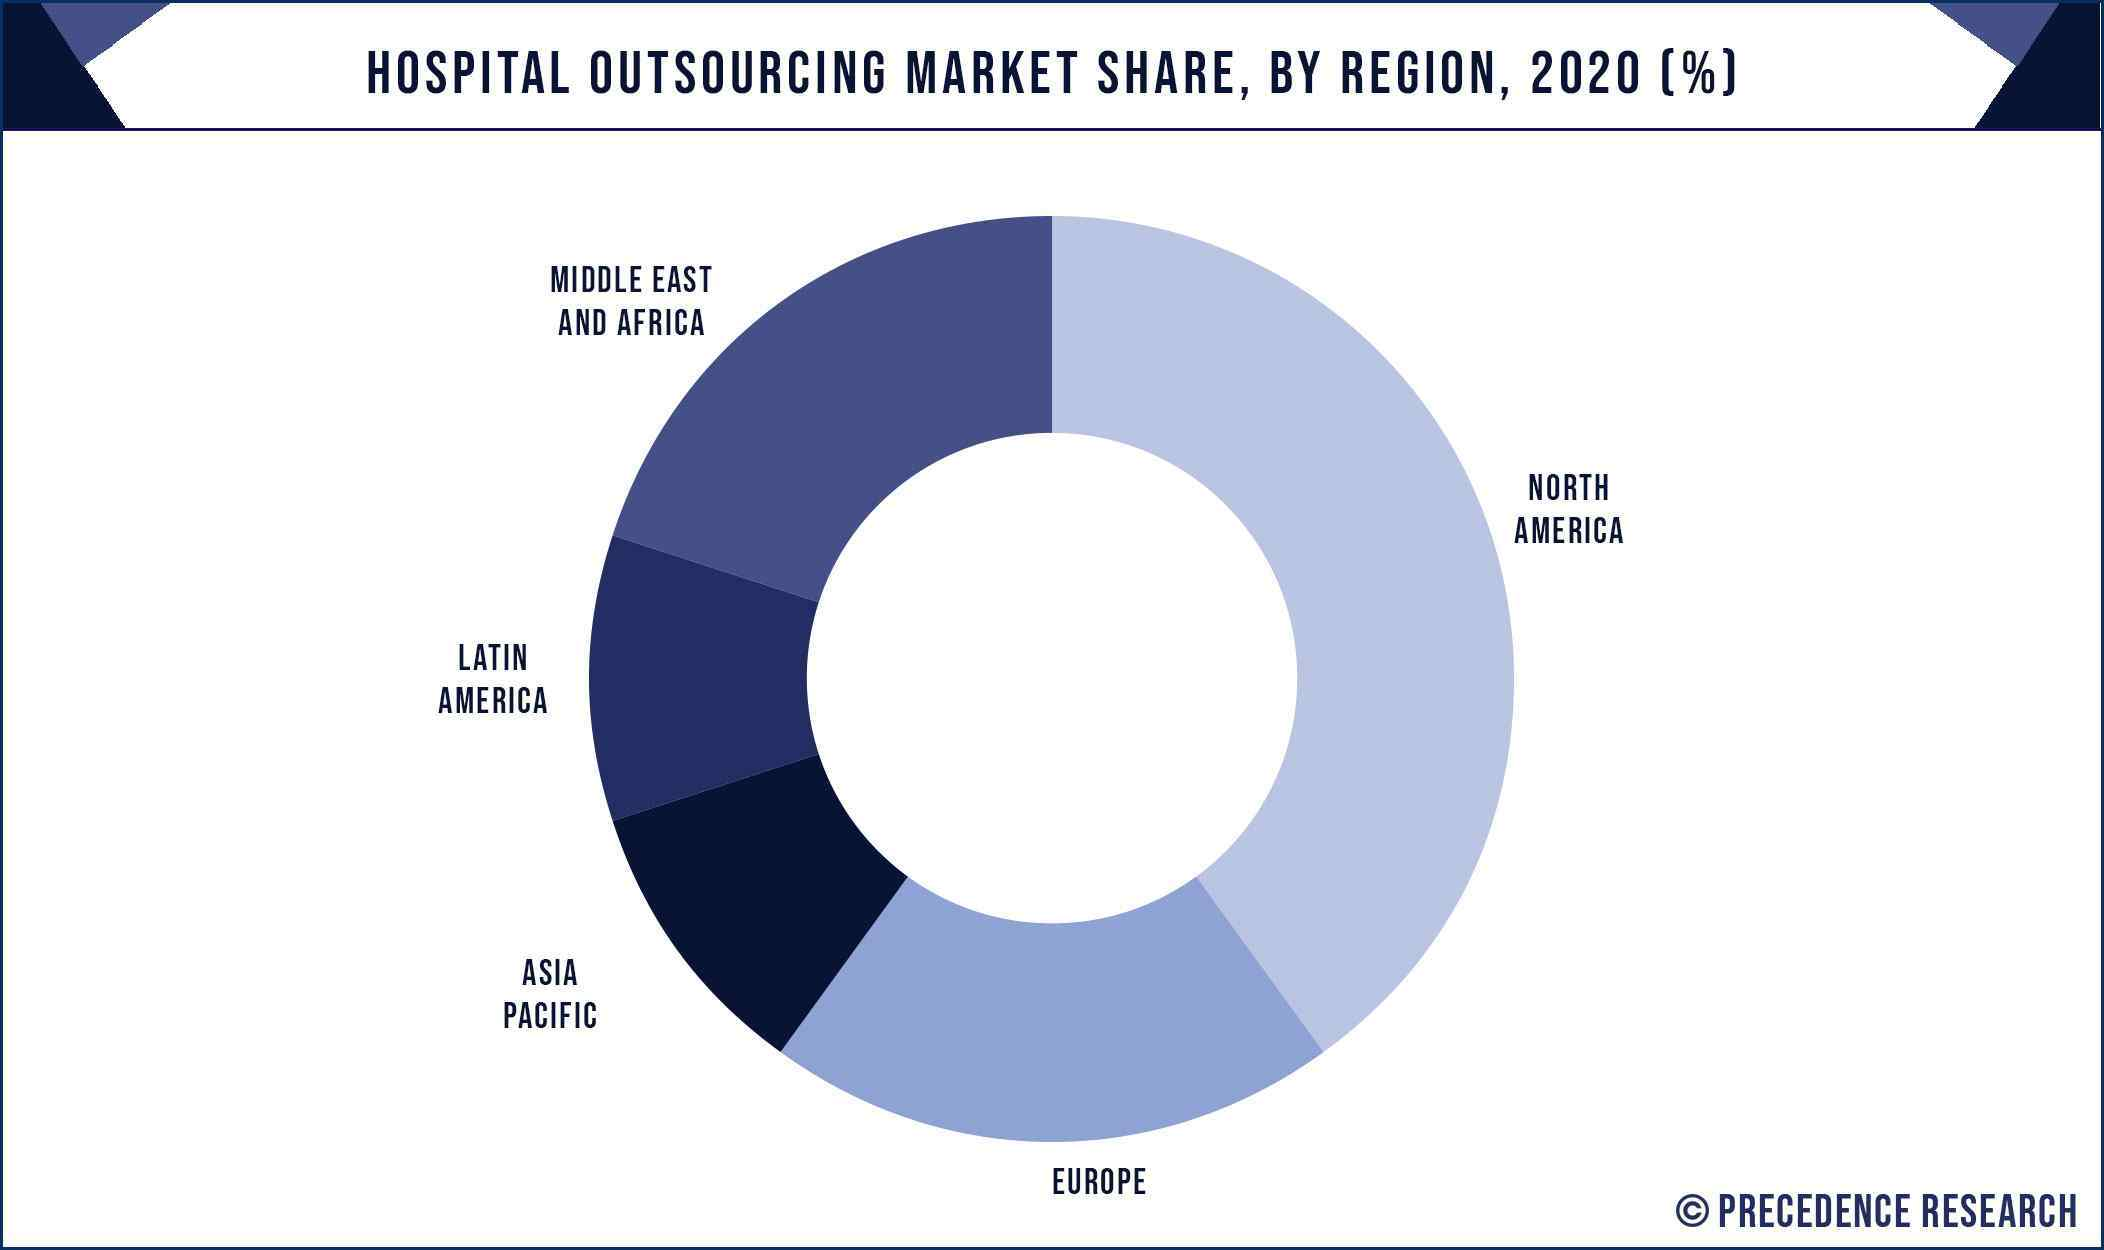 Hospital Outsourcing Market Share, By Region, 2020 (%)